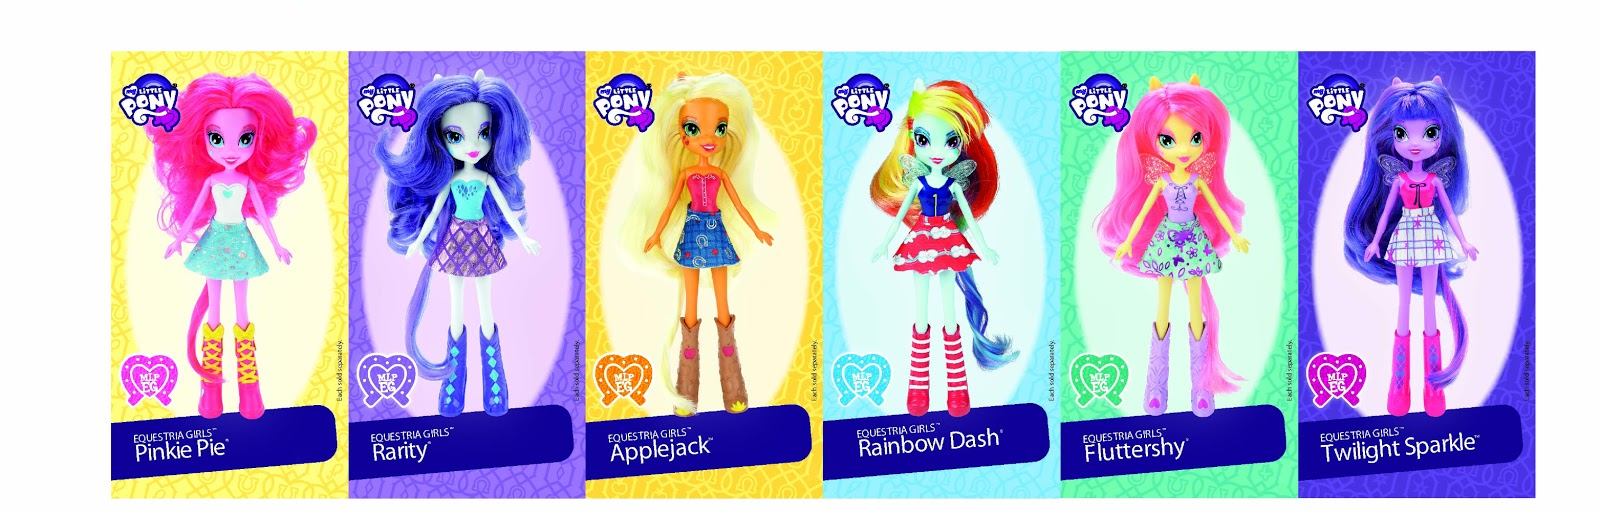 Enter To Win 1 My Little Pony Equestria Girls Doll